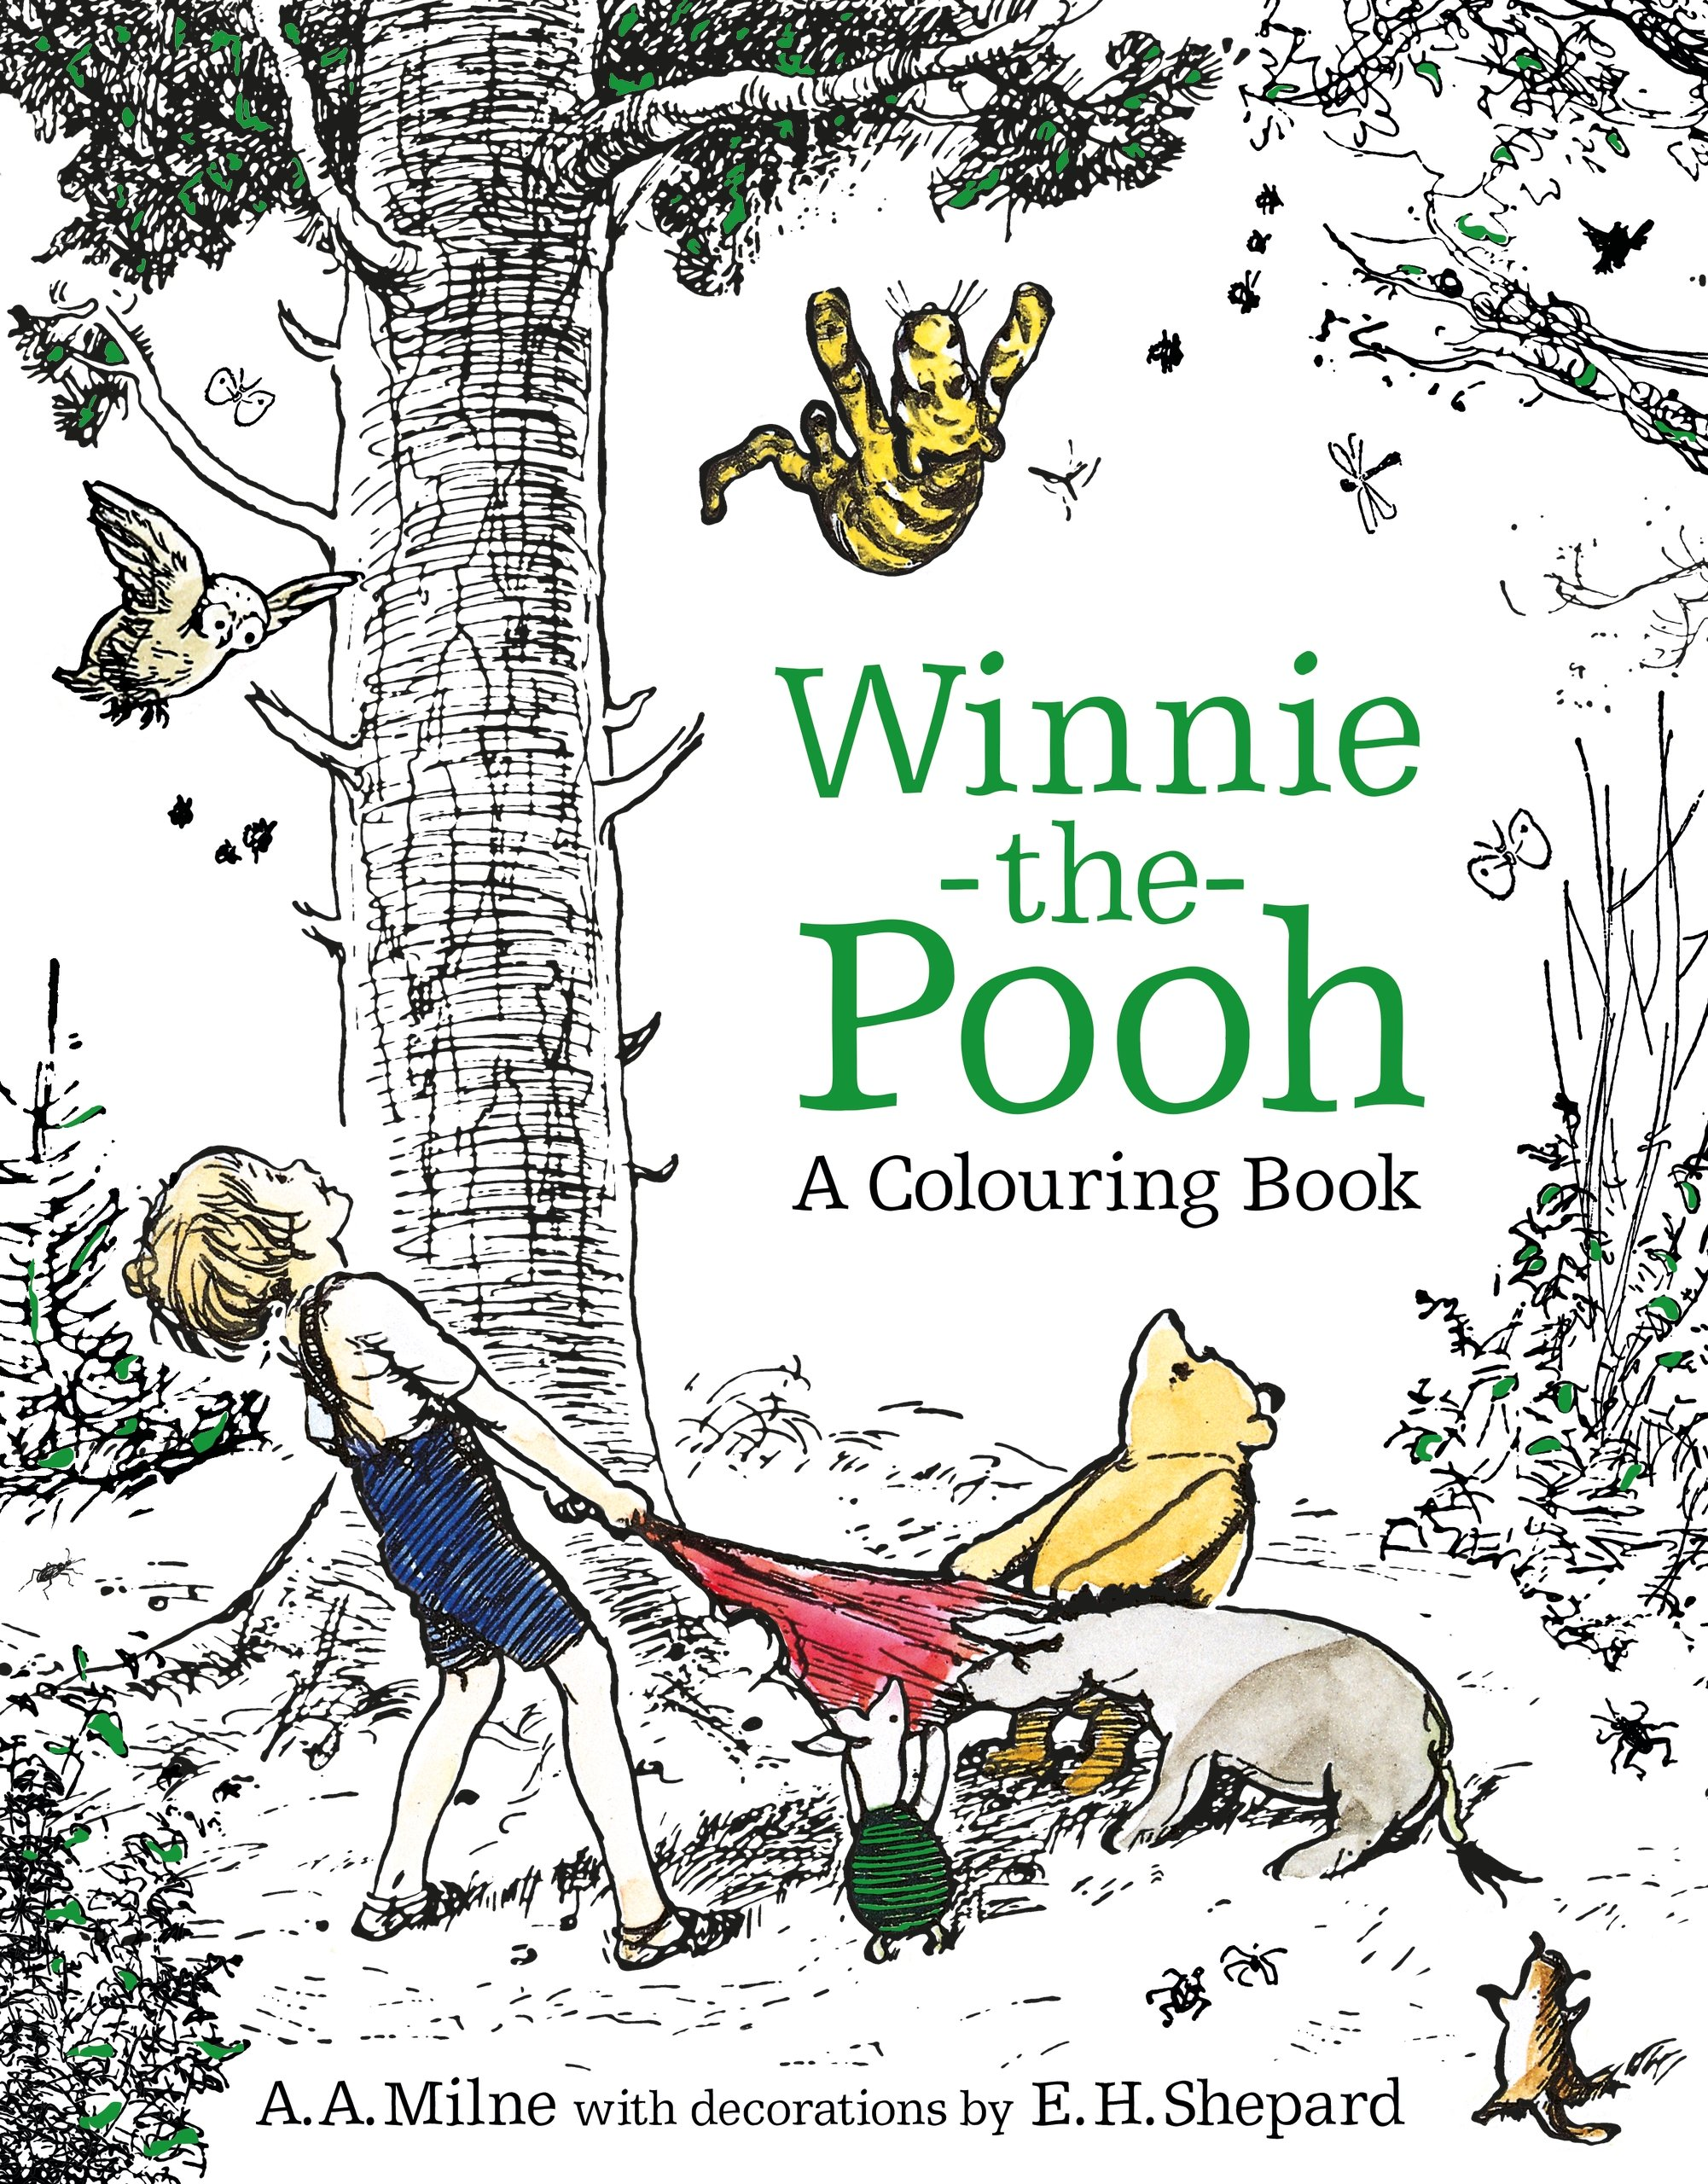 Winnie The Pooh A Colouring Book Egmont Publishing UK Milne E H Shepard 9781405286107 Amazon Books